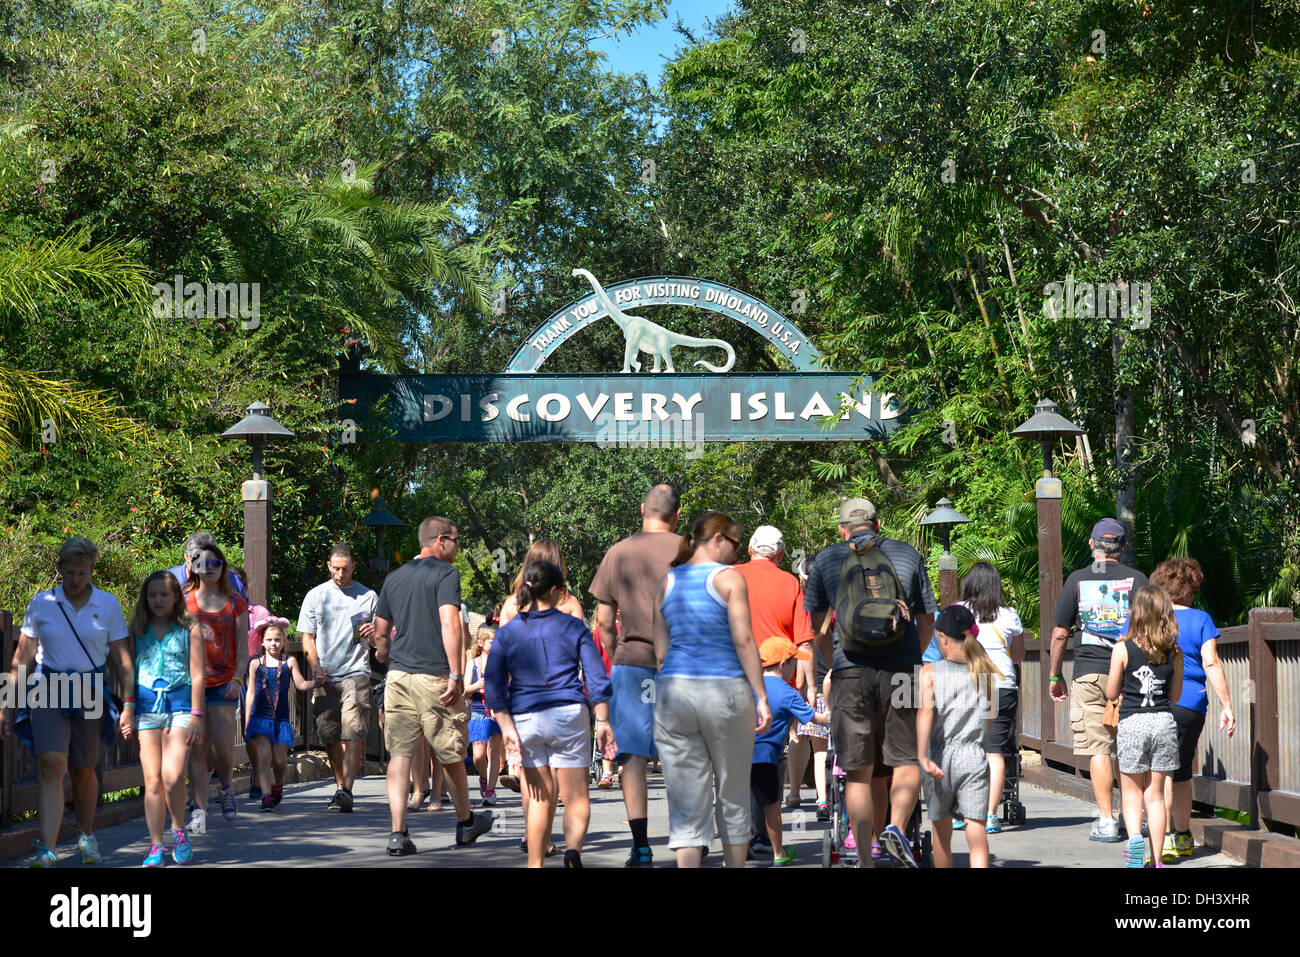 Discovery Island Which Park In Disneyworld